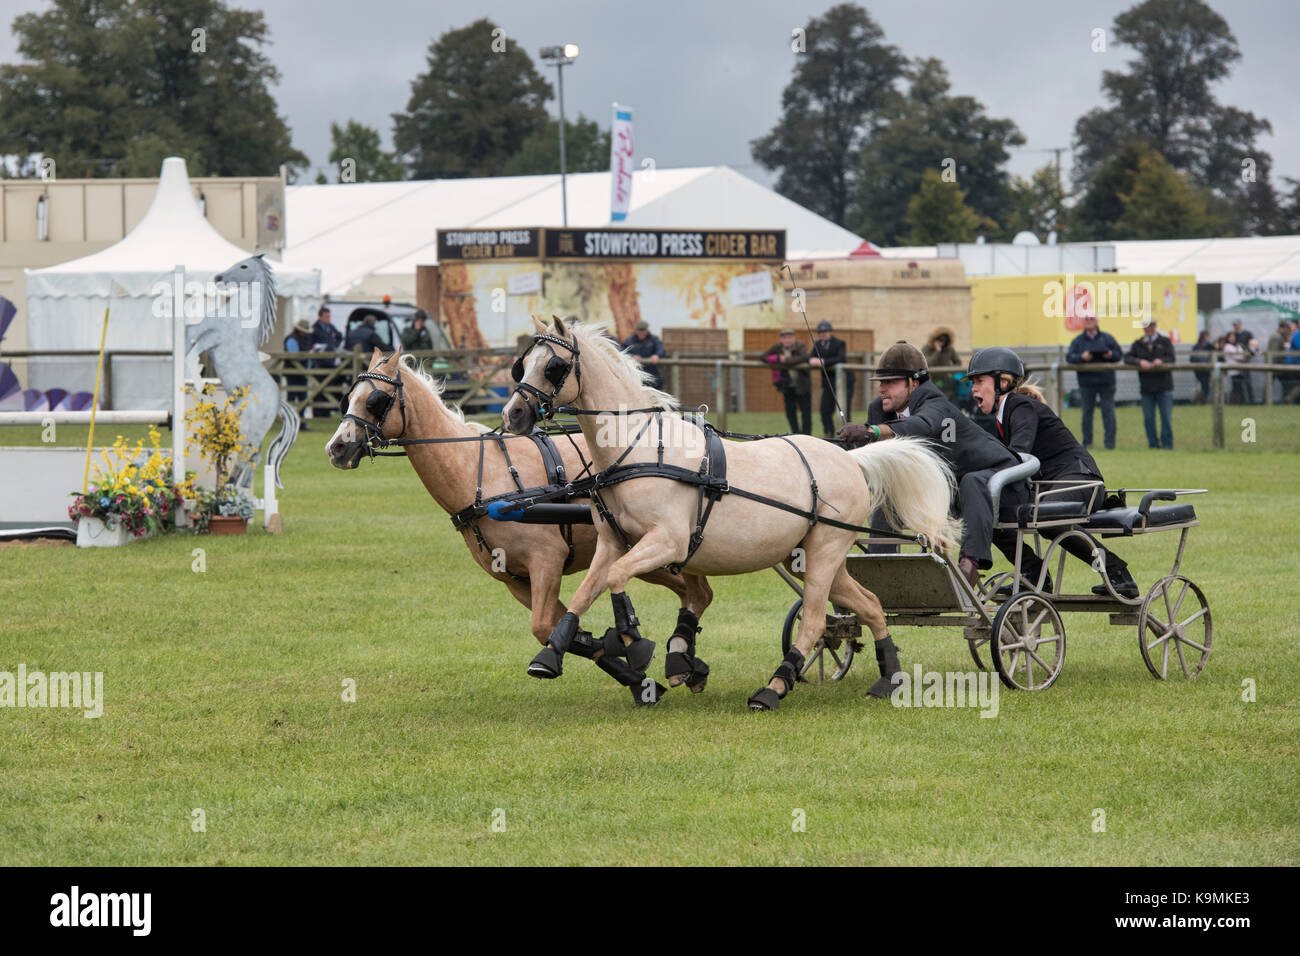 Double Harness Scurry Driving. Scurry driving in the main arena at The Royal County of Berkshire show, Newbury. - Stock Image